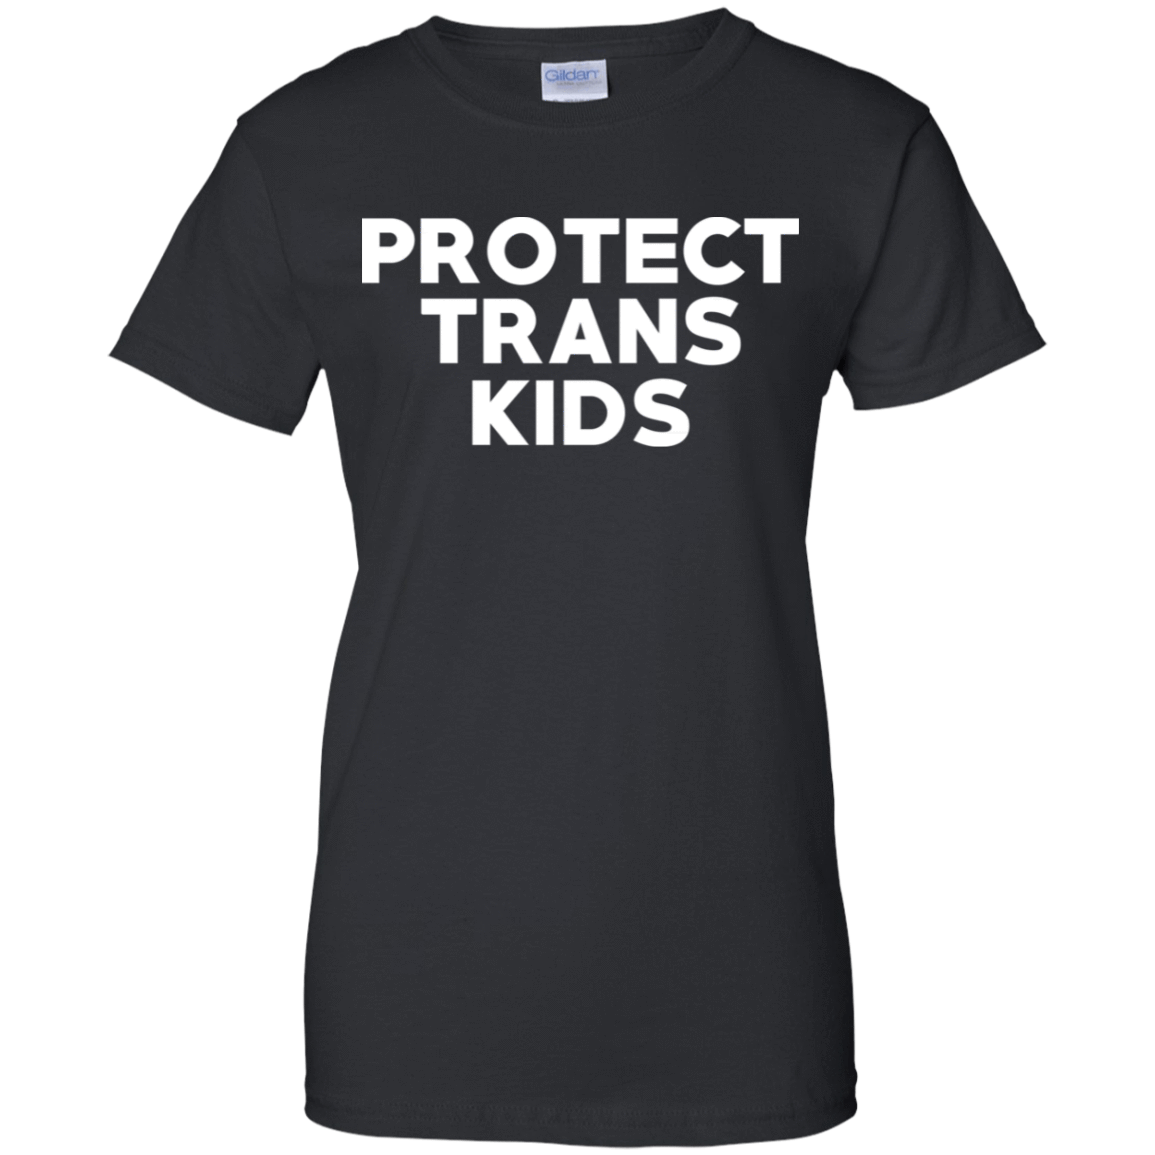 Protect Trans Kids 939-9248-73563073-44695 - Tee Ript